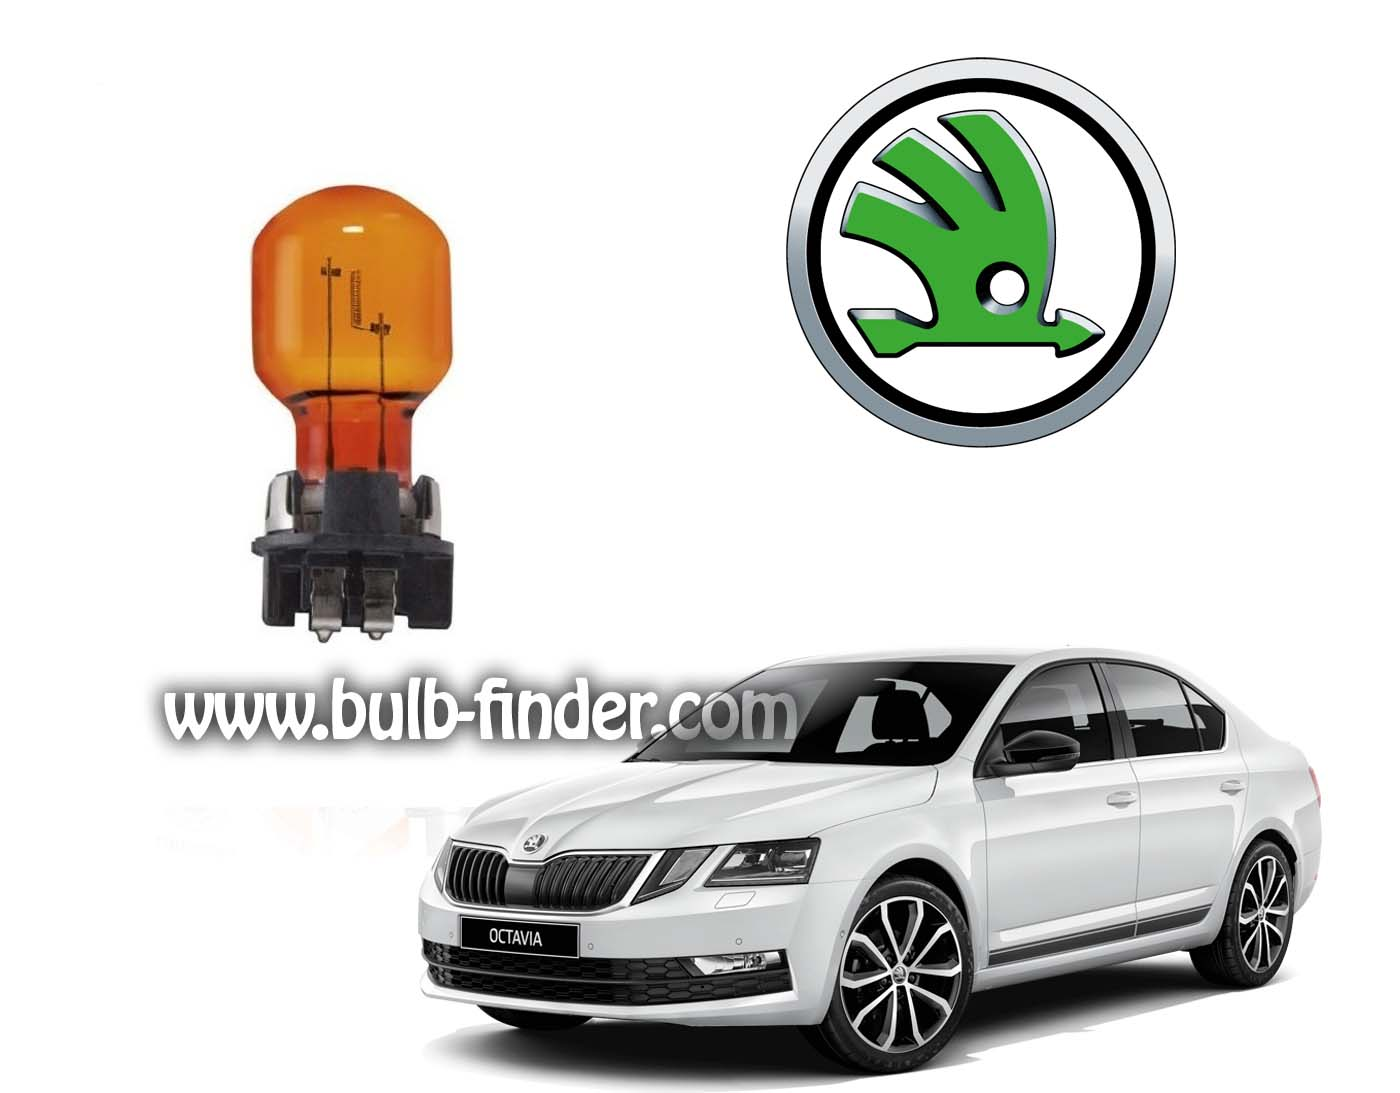 Skoda Octavia bulb model DIRECTION TURN SIGNAL